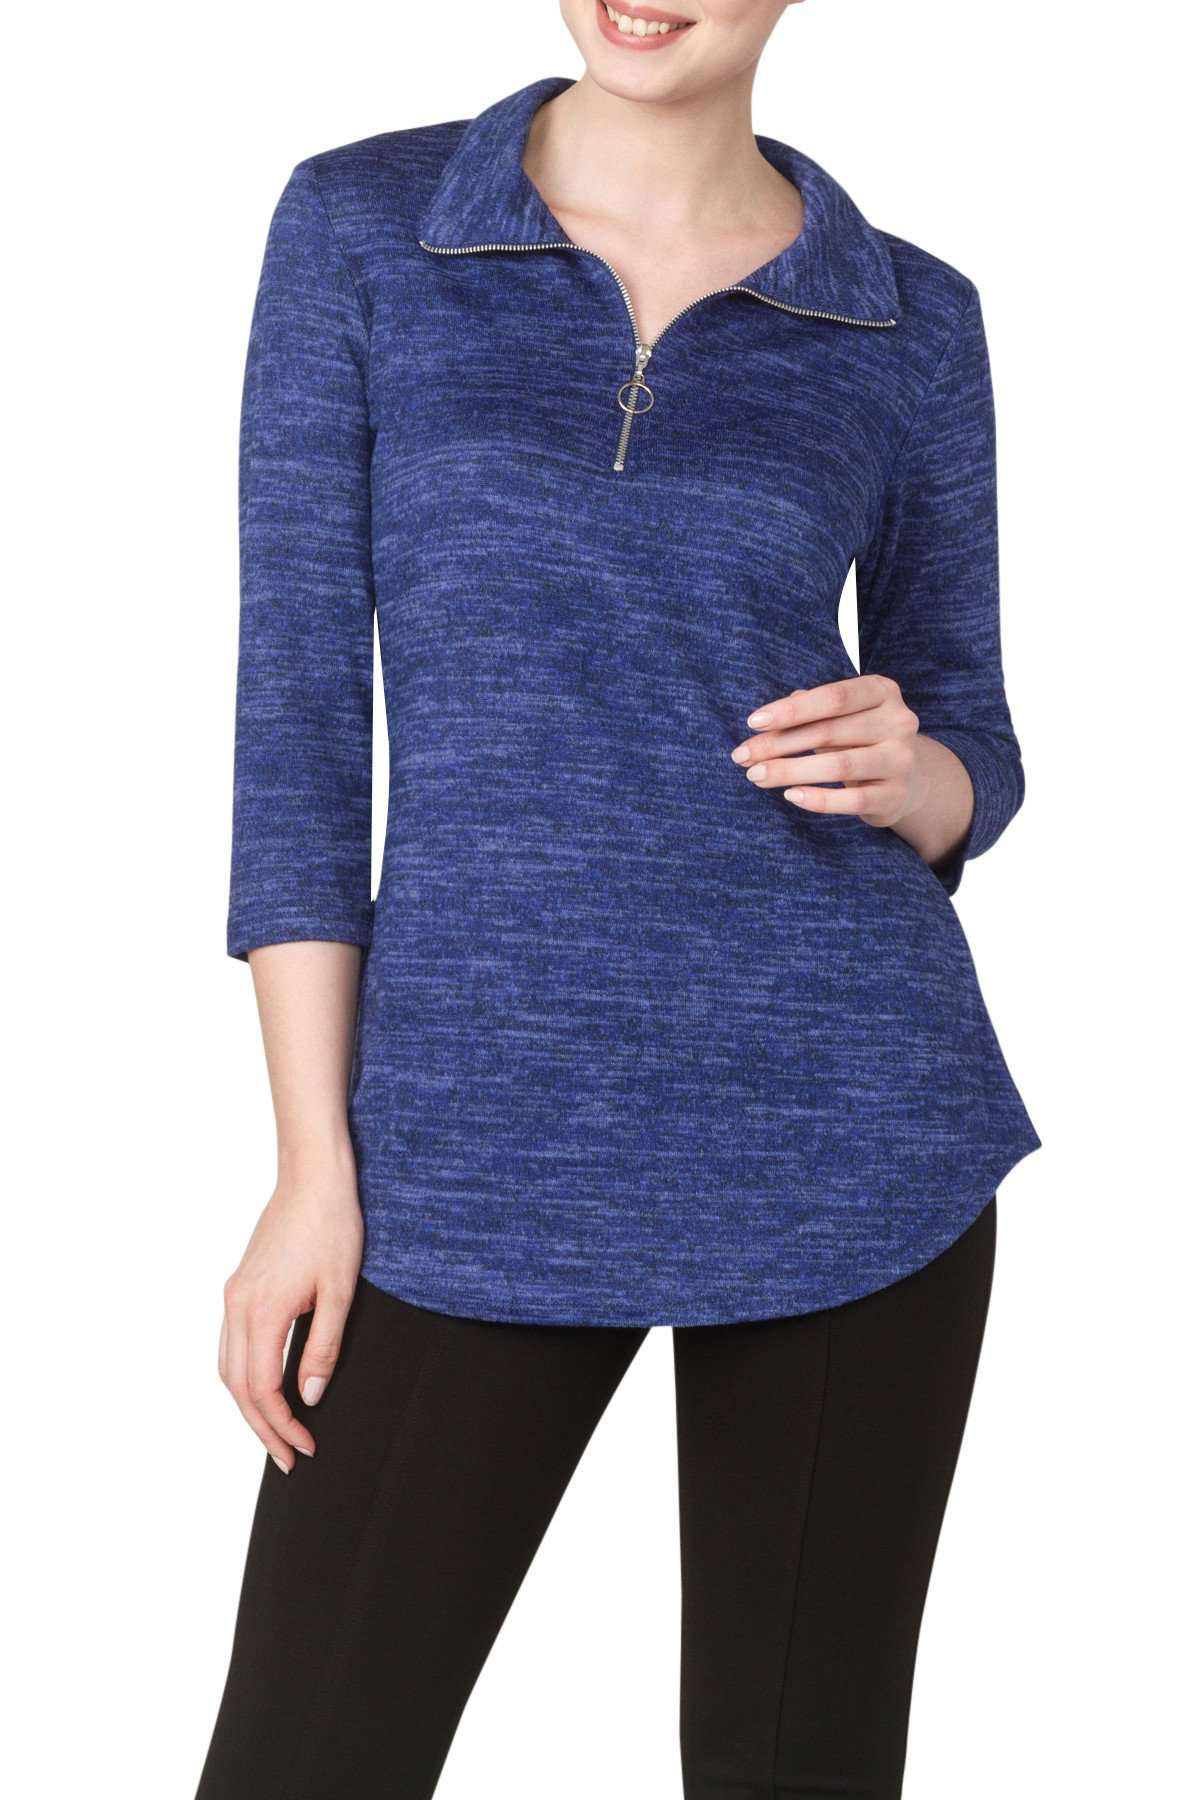 Women's Blue Sweater On Sale Canada - Shop Local - Now 50 Off - Yvonne Marie - Yvonne Marie